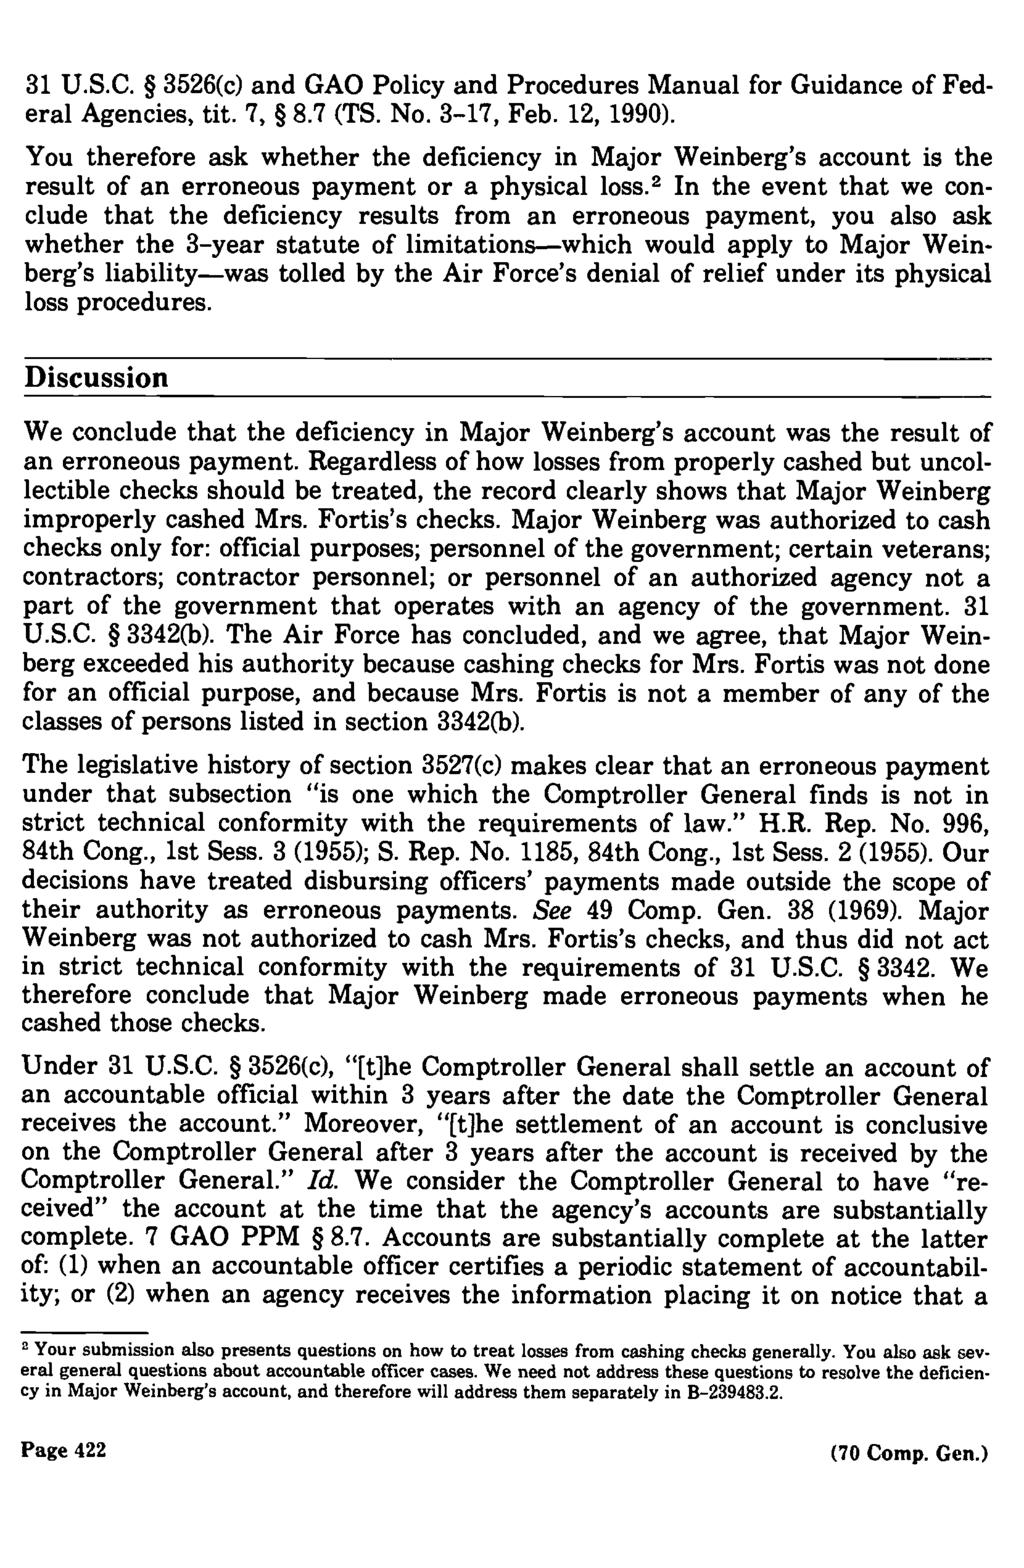 31 U.s.c. 3526(c) and GAO Policy and Procedures Manual for Guidance of Federal Agencies, tit. 7, 8.7 (TS. No. 3 17, Feb. 12, 1990).